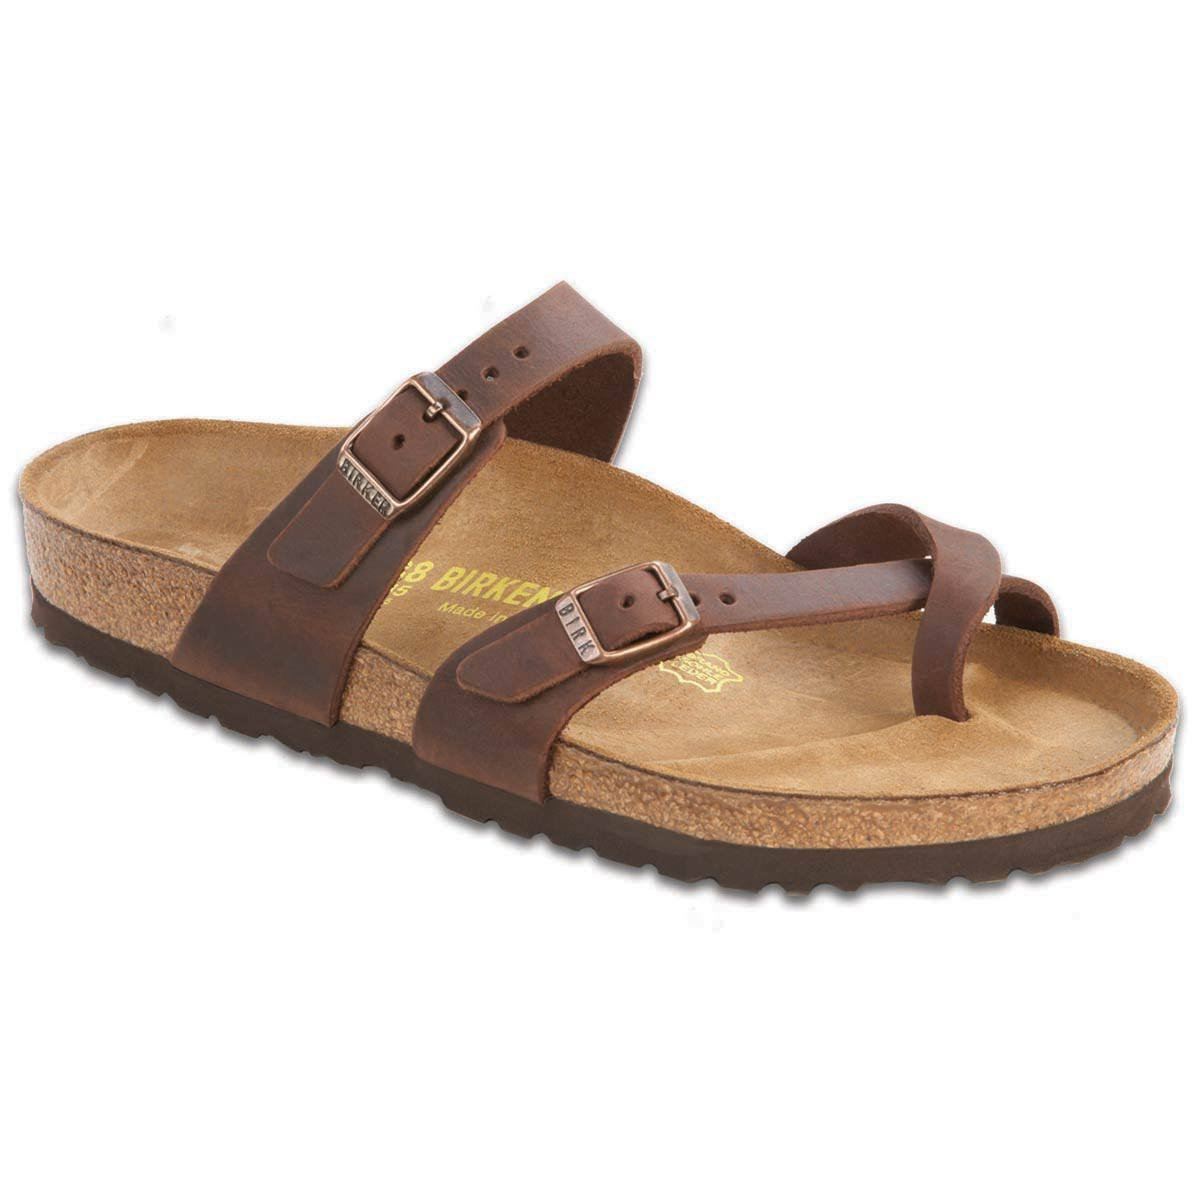 Birkenstock Womens Mayari Leather Sandal - Brown, 9 US